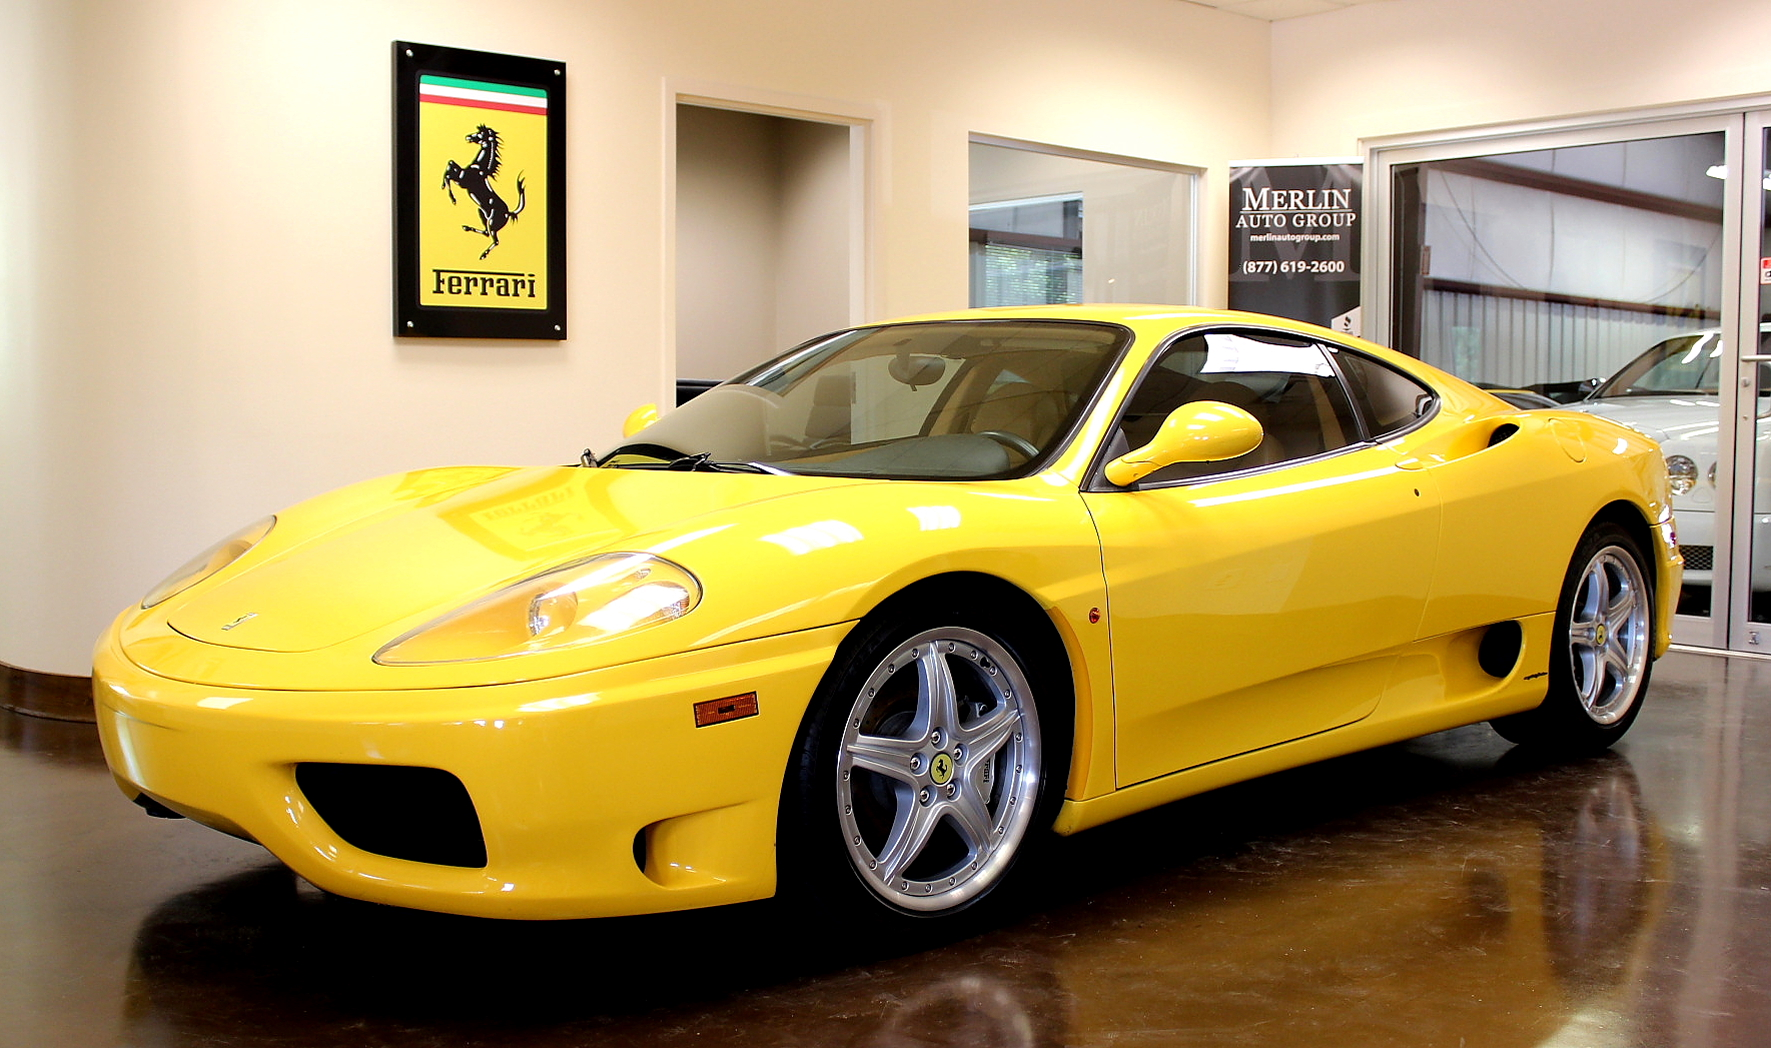 Used Ferrari 360 Models Are More Affordable, But Not For Long